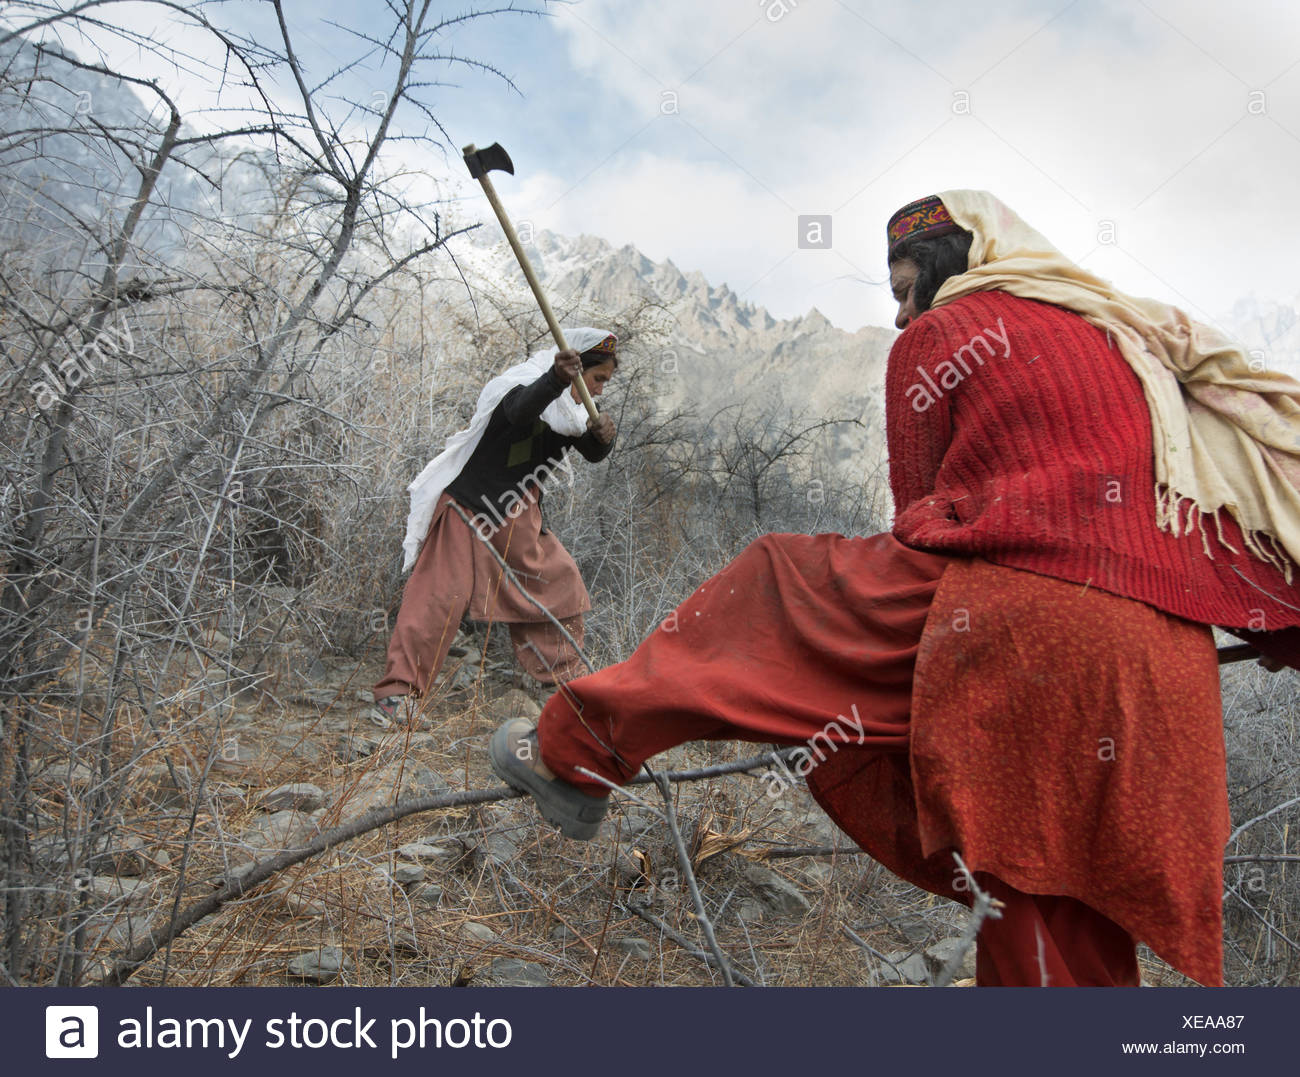 Women get wood for cooking and heating a two hour walk. Stock Photo